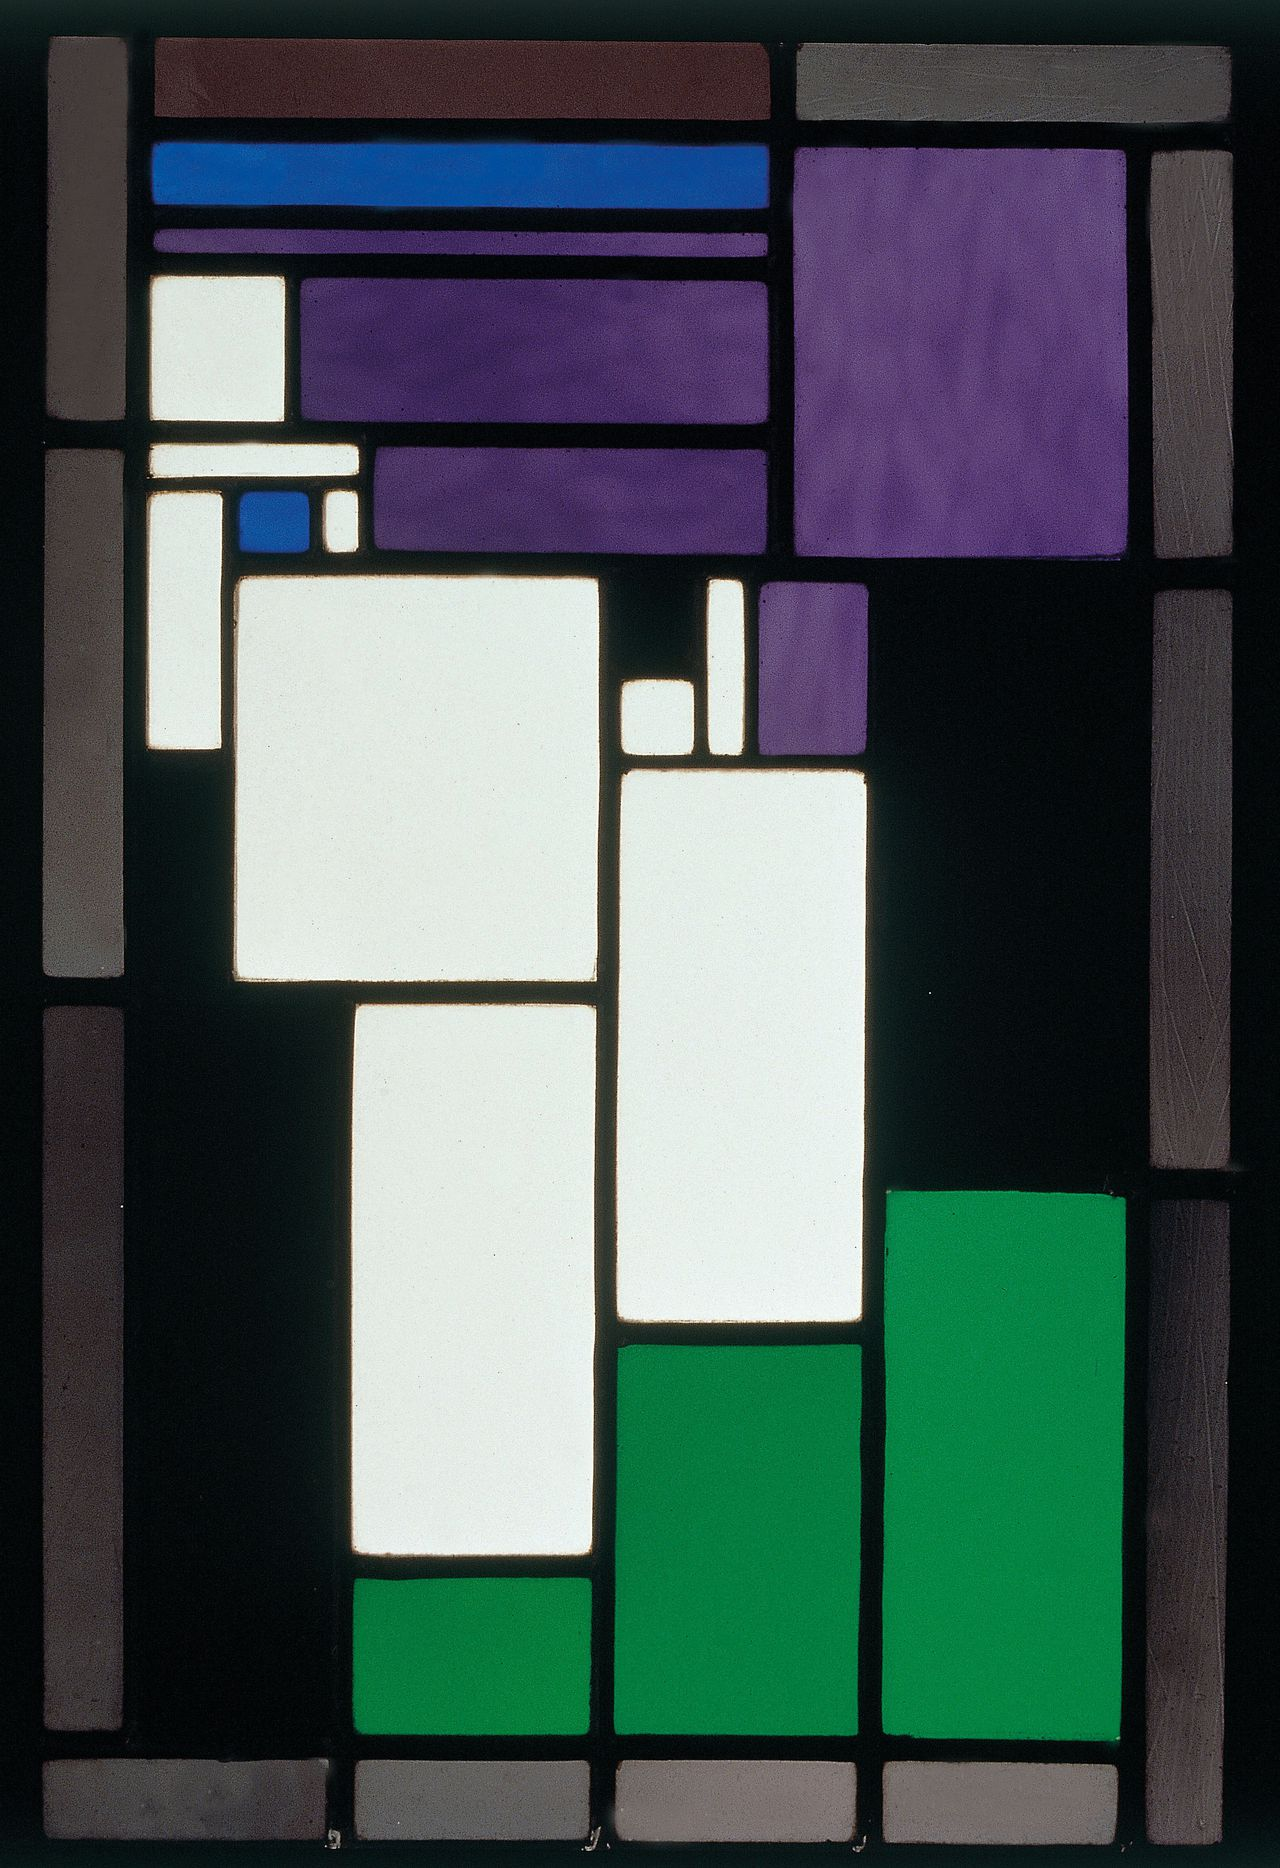 'Stained Glass Composition: Female Head' (1917) by Theo van Doesburg, is seen in this undated handout photograph released to the media on Monday, Feb. 8, 2010. It is on show in the exhibit 'Van Doesburg & The International Avant-Garde' at Tate Modern, in London, U.K., through May 16. Source: Kroller-Muller Museum via Bloomberg EDITOR'S NOTE: NO SALES. EDITORIAL USE ONLY